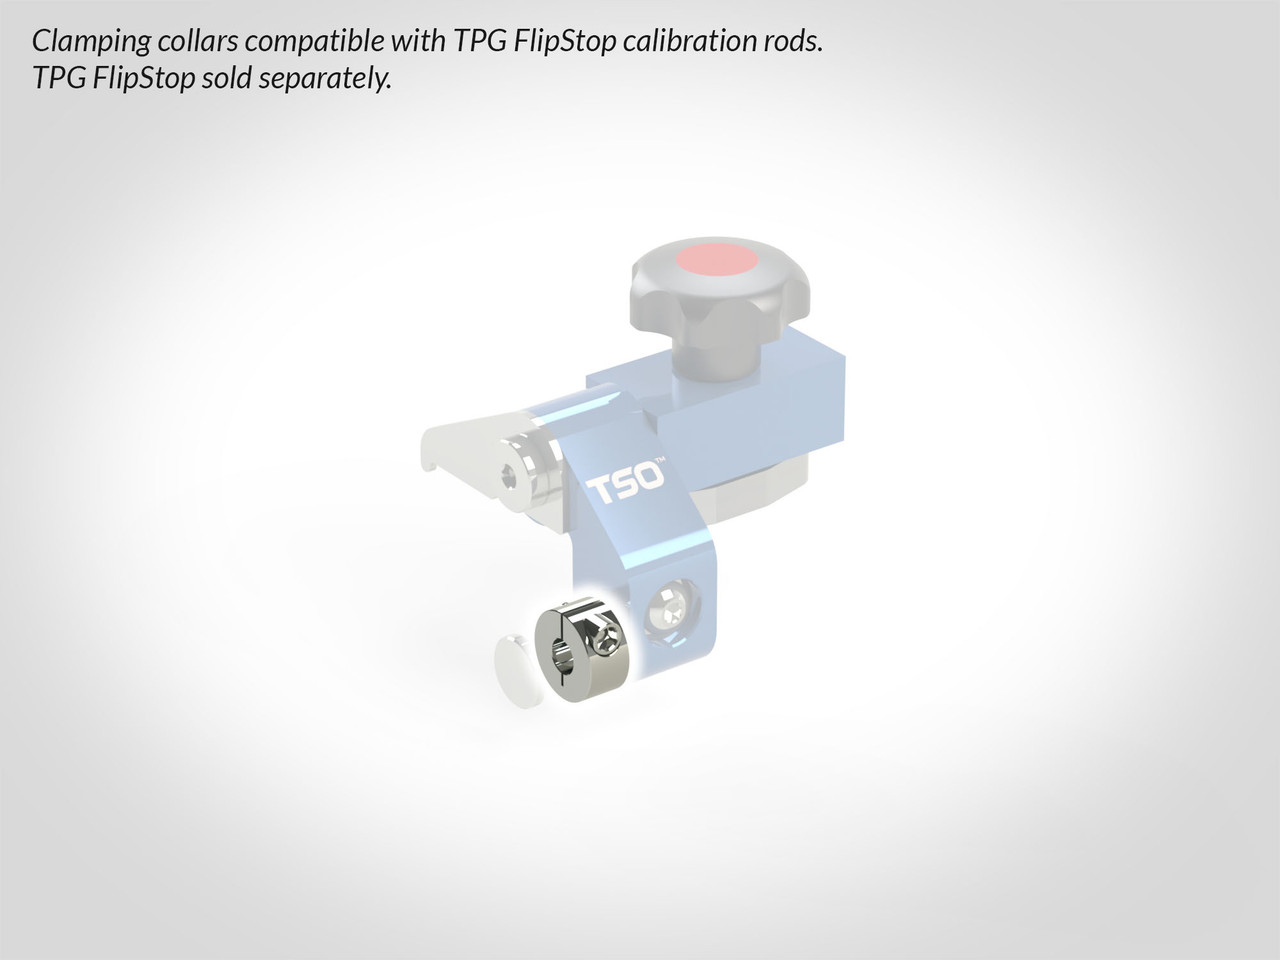 Depiction of clamping collar on TPG FlipStop. Note the TPG FlipStop is sold separately.